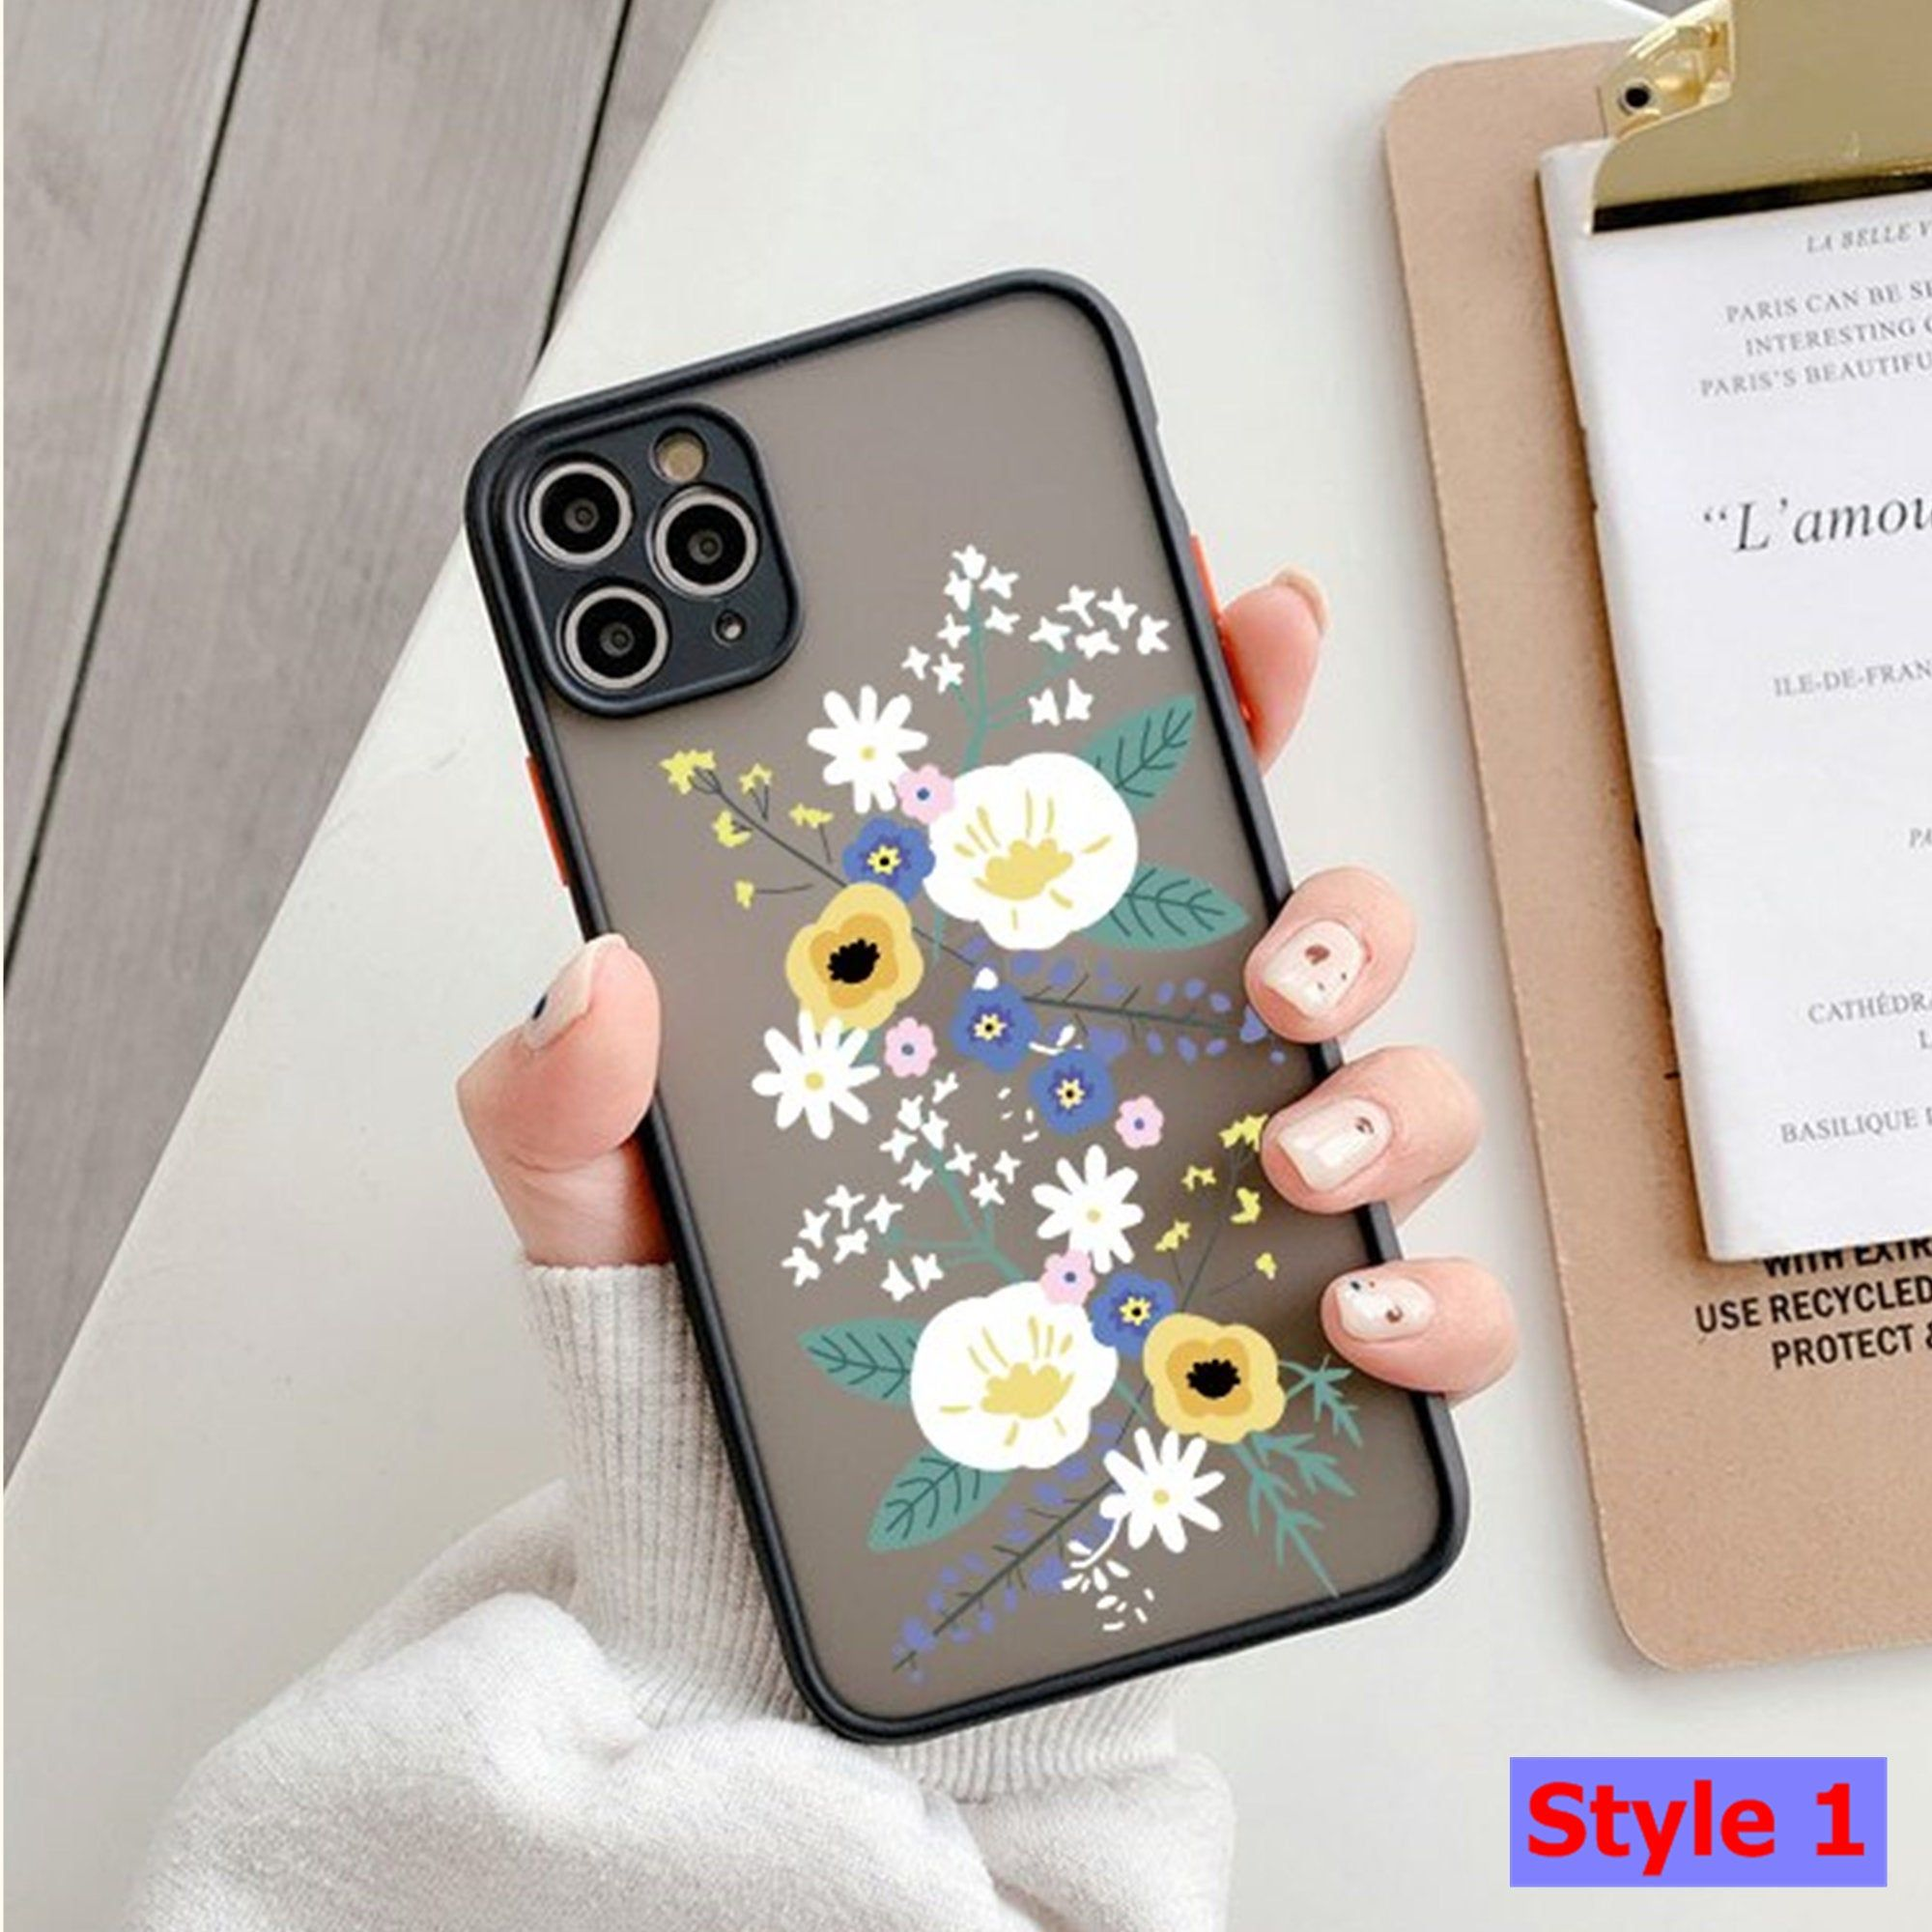 Cute Flower Floral Phone Case for iPhone 11 12 Pro Max | iPhone X XS XR | 7 8 Plus | Pretty | Graffity | Silicone | Cell Phone Case